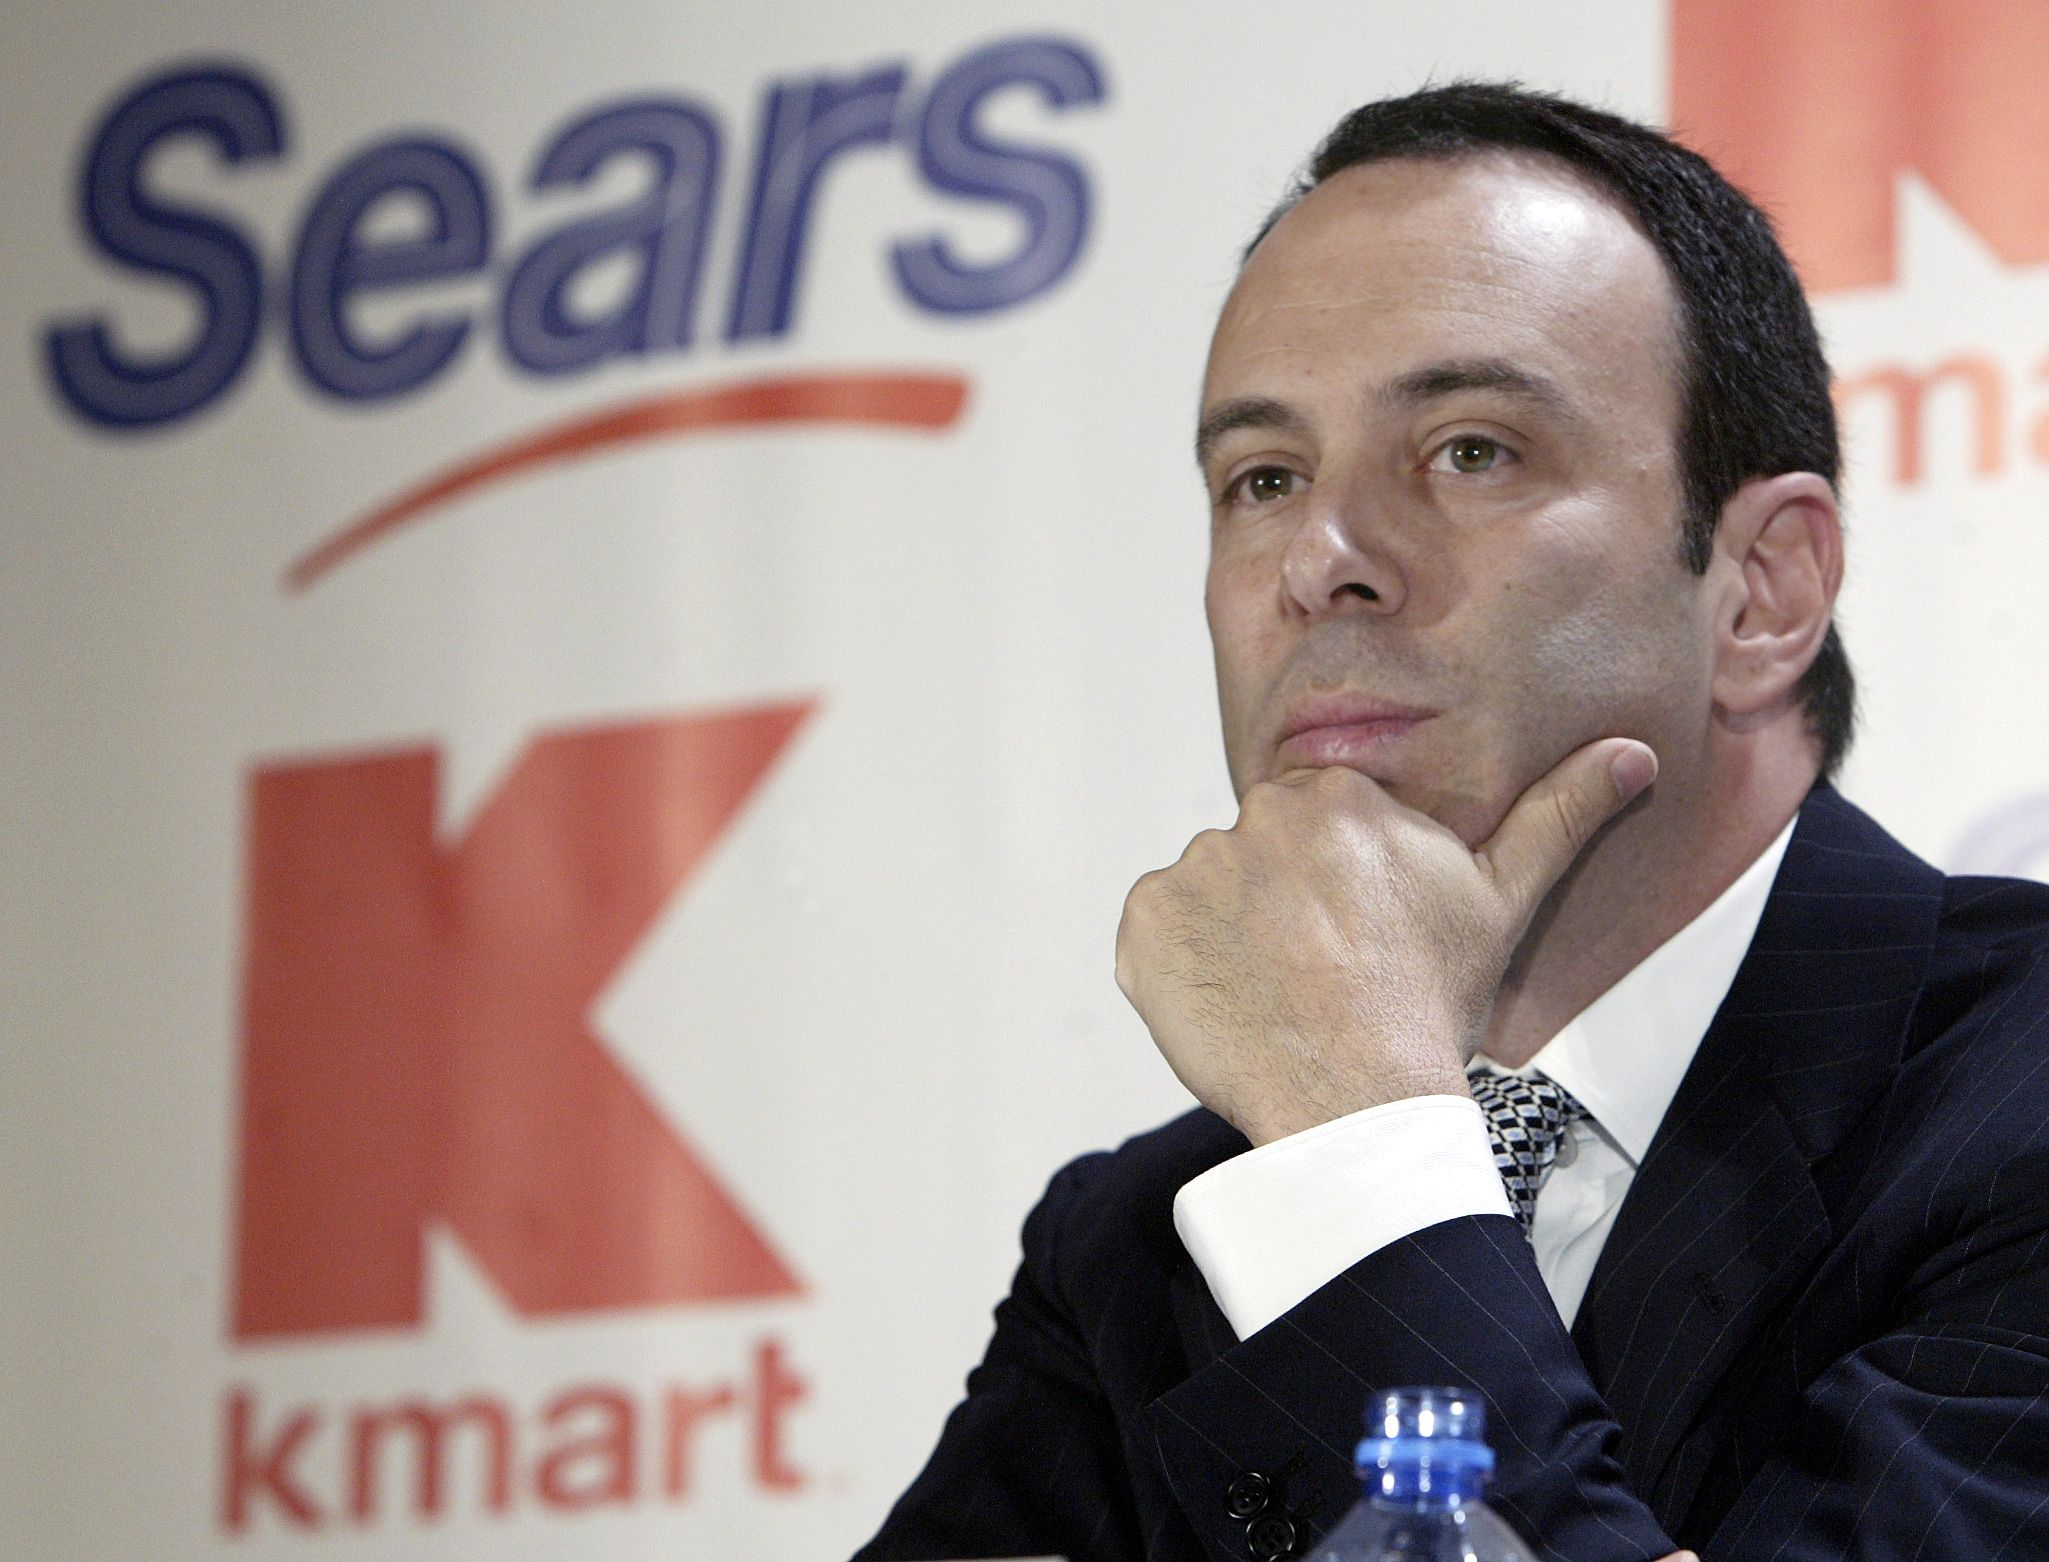 Kmart chairman Edward Lampert listens during a news conference to announce the merger of Kmart and Sears in New York . Kmart is acquiring Sears, one of the most venerable names in U.S. retailing, in a surprise $11 billion deal that will create the nation's third-largest retailerKMART SEARS MERGER, NEW YORK, USA